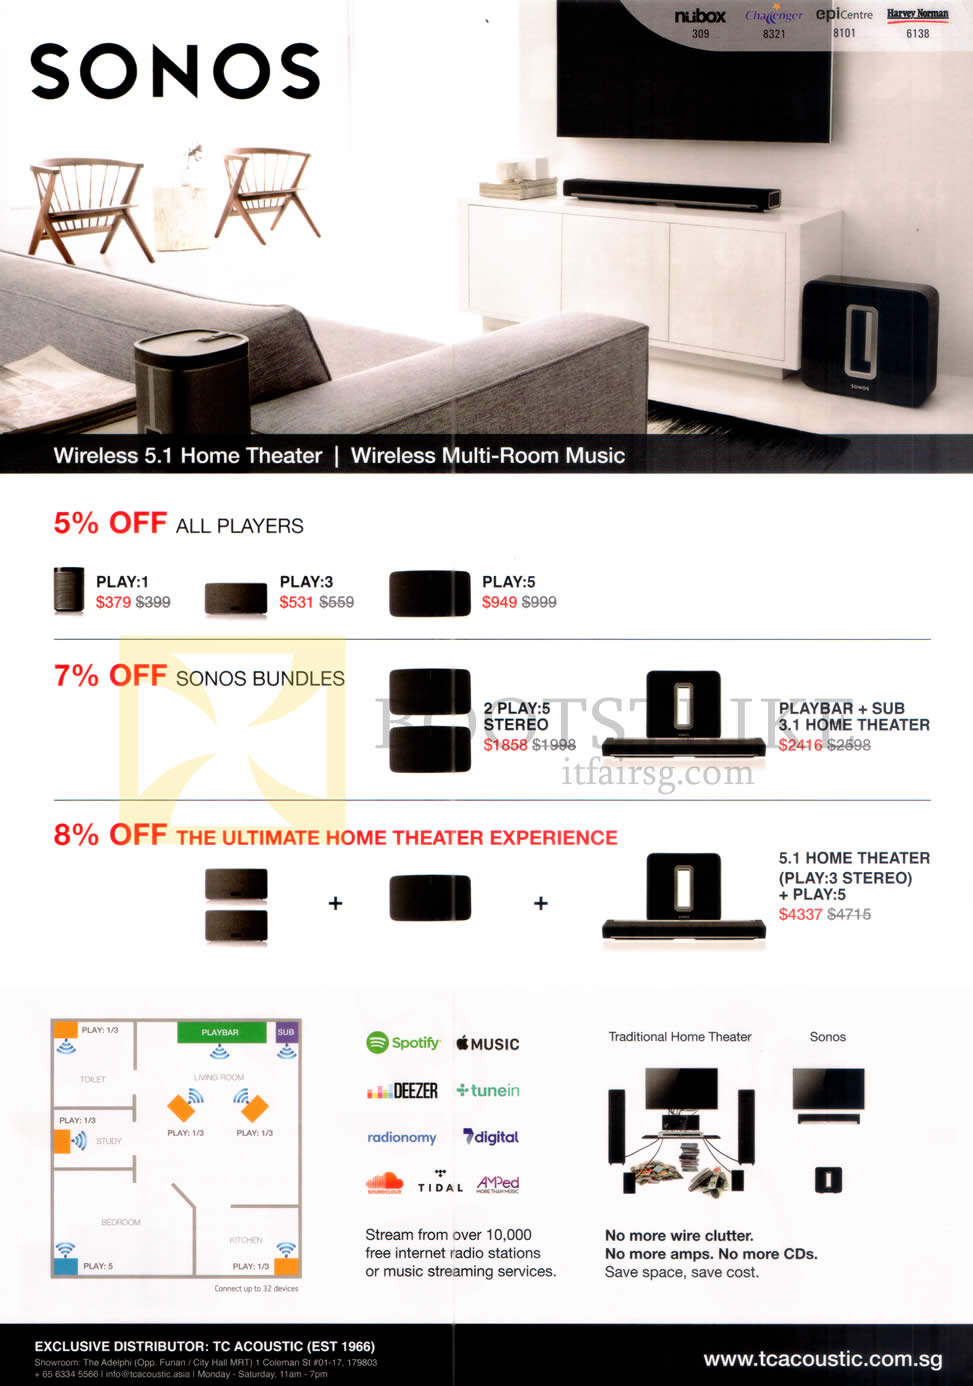 klipsch sonos home theater systems play 1 3 5 2 play 5 stereo 5 1 home theater play 3 stereo. Black Bedroom Furniture Sets. Home Design Ideas